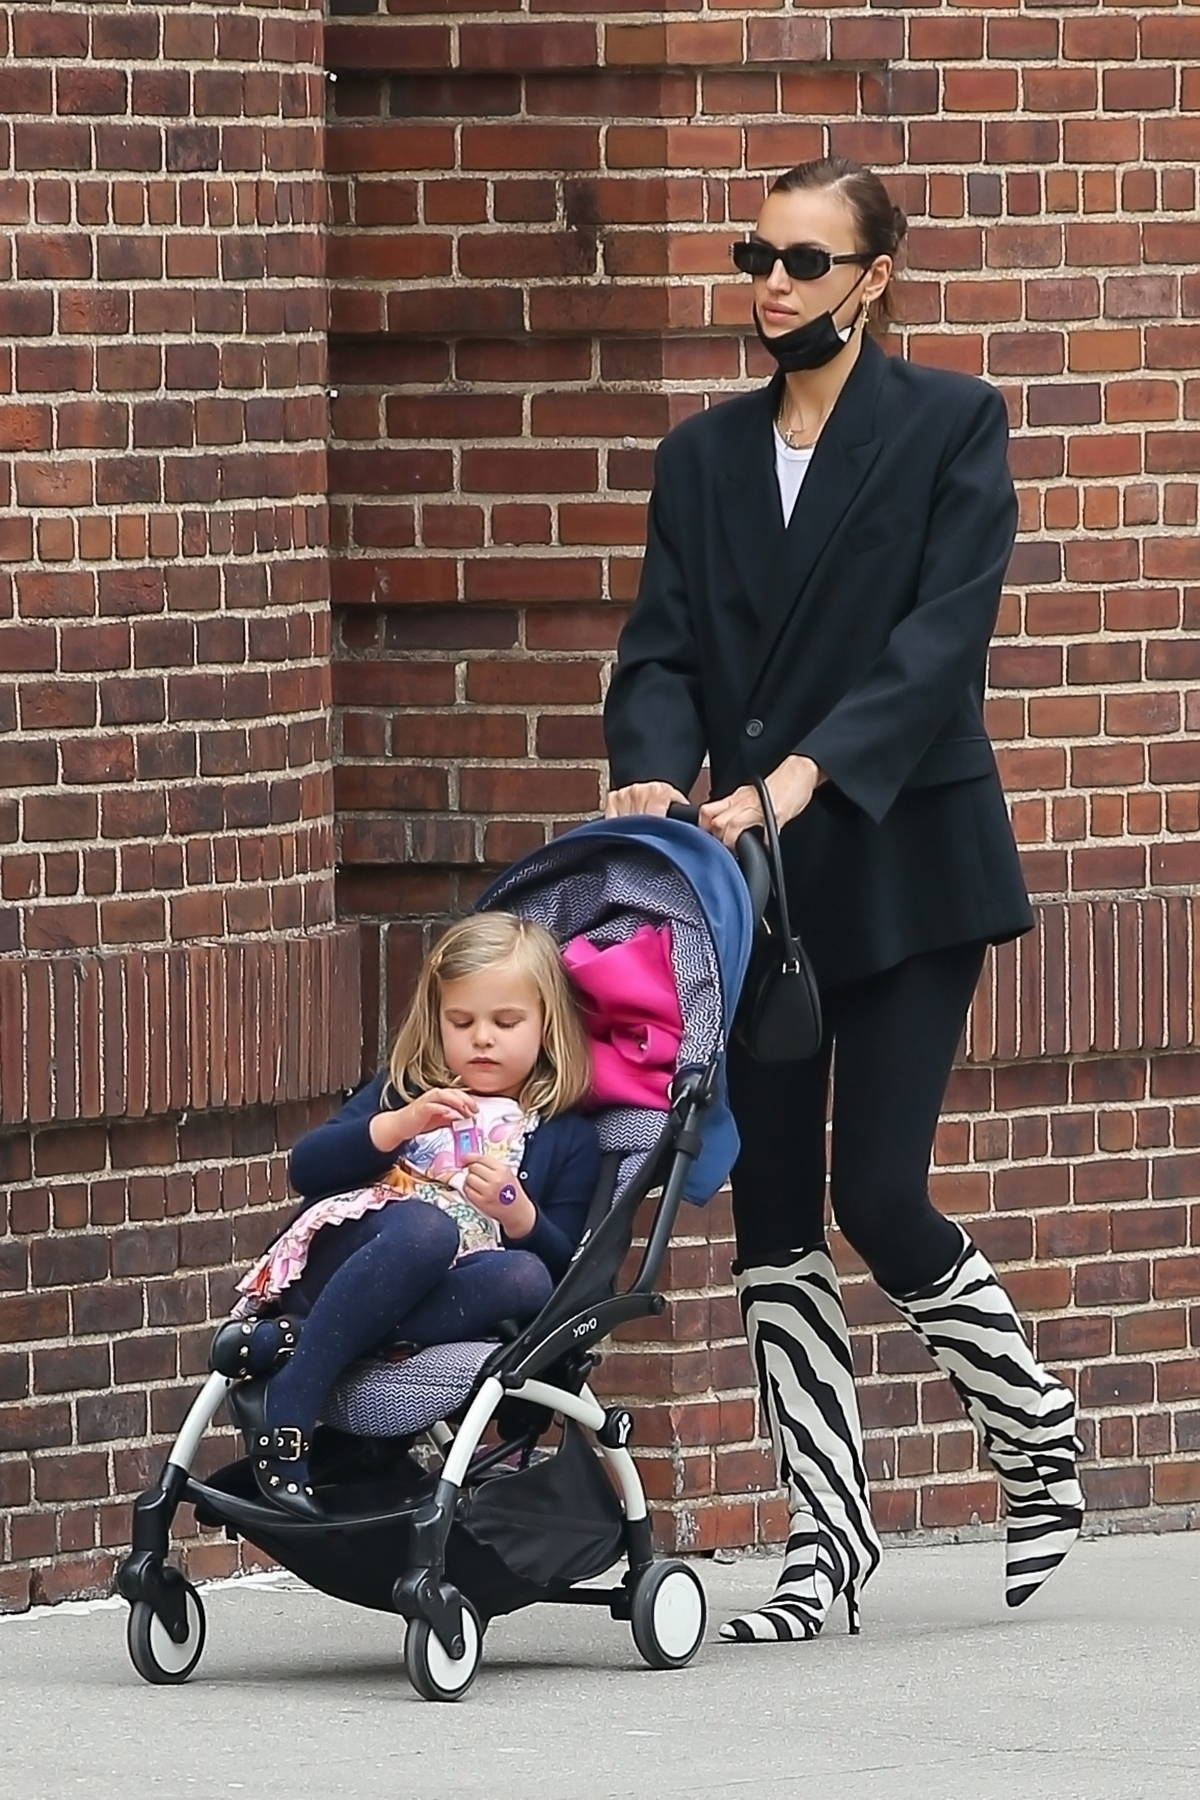 Irina Shayk puts on a stylish display while she picks up her daughter from school in New York City